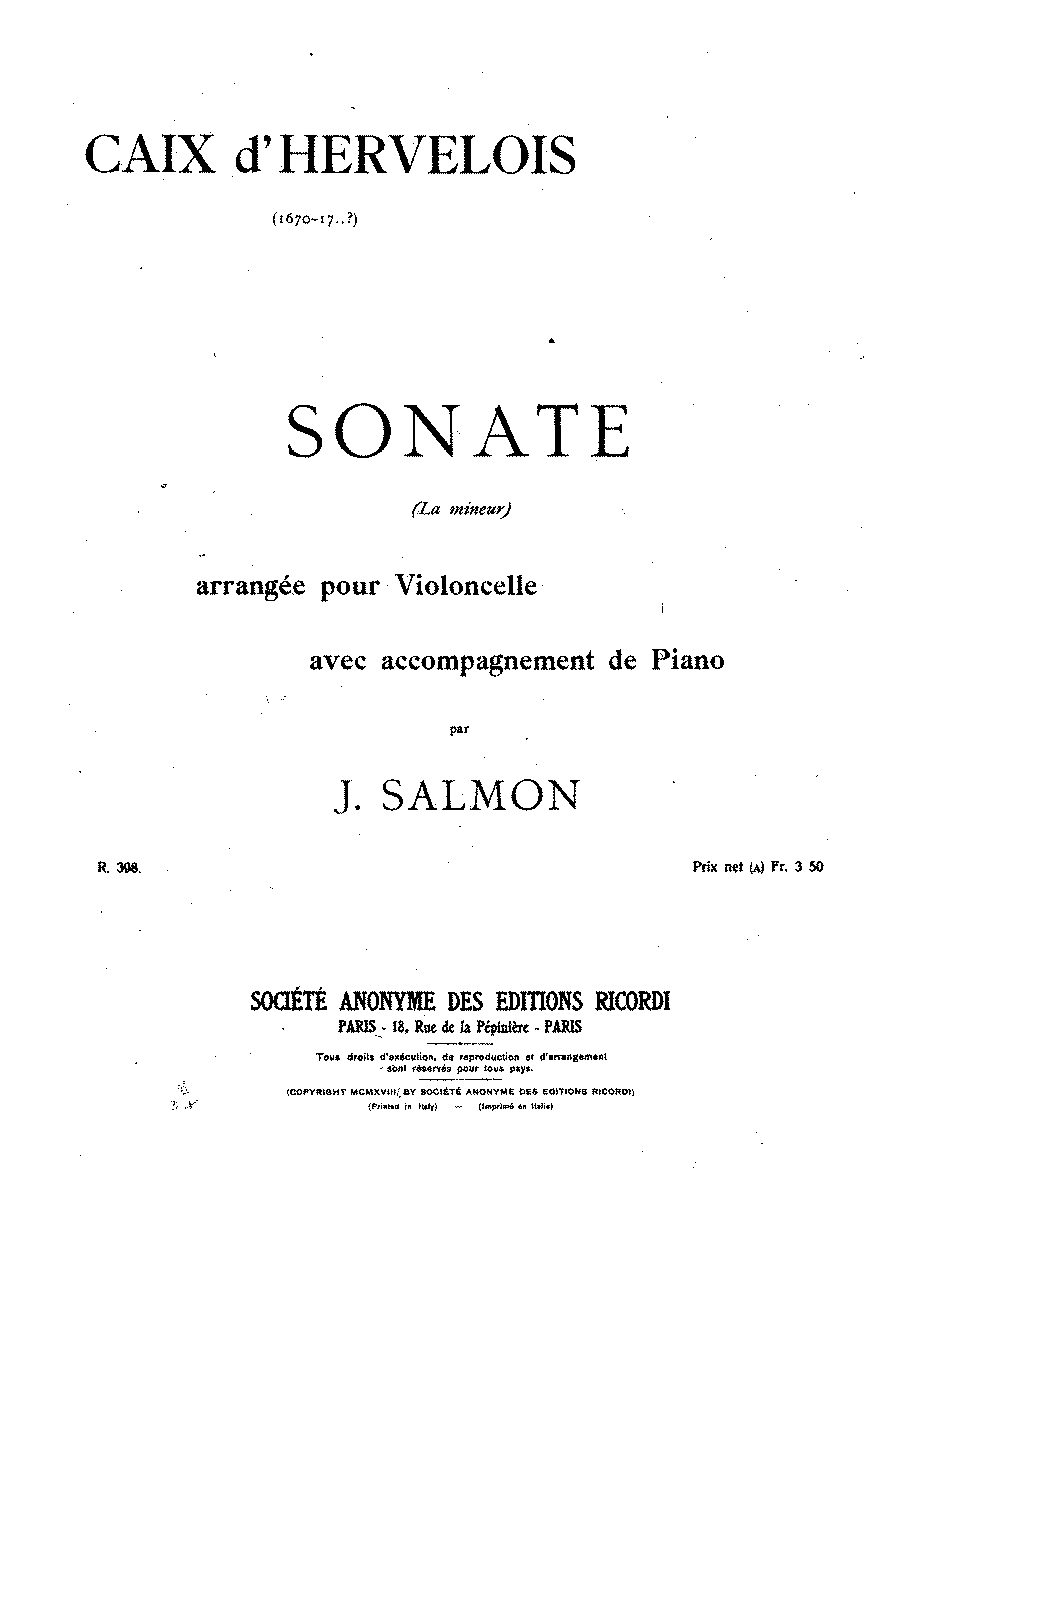 PMLP143136-Caix d'Hervelois - Sonata in A minor (Salmon) for cello and piano pno.pdf